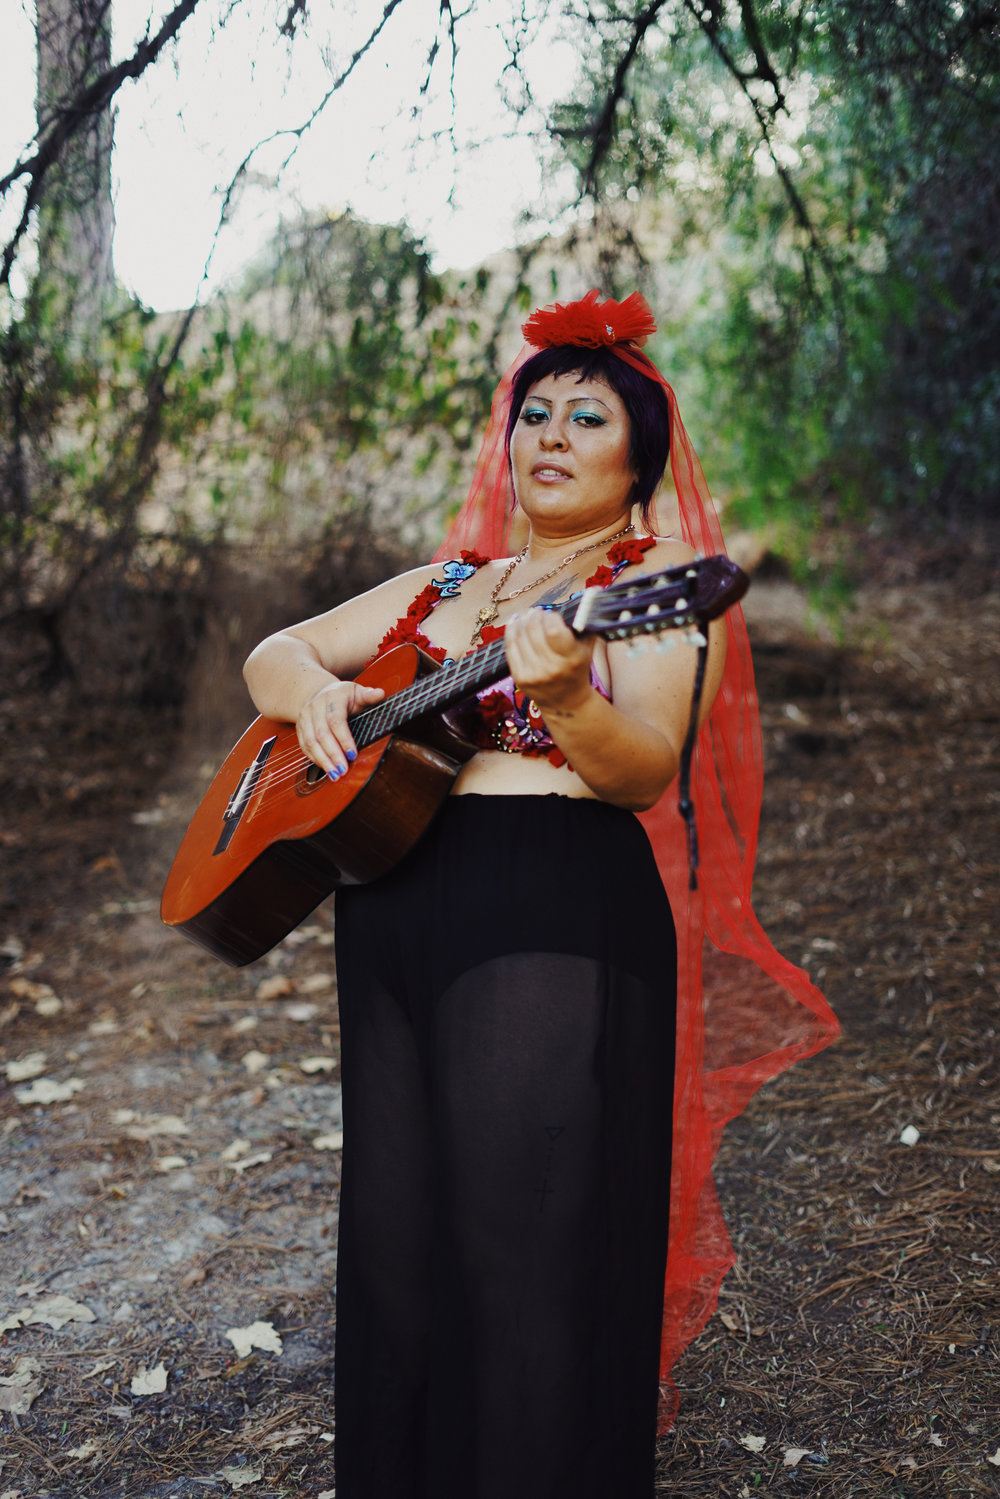 San Cha - San Cha is a singer-songwriter known for her explosive, visceral and emotional live performances. She captivates audiences with their blend of Mexican Folk Music, Cumbia and Punk. Belting out 'Gospel Ranchera Punk' while twirling around the stage, San Cha will you leave you inspired, healed and transformed.https://sancha.bandcamp.com/